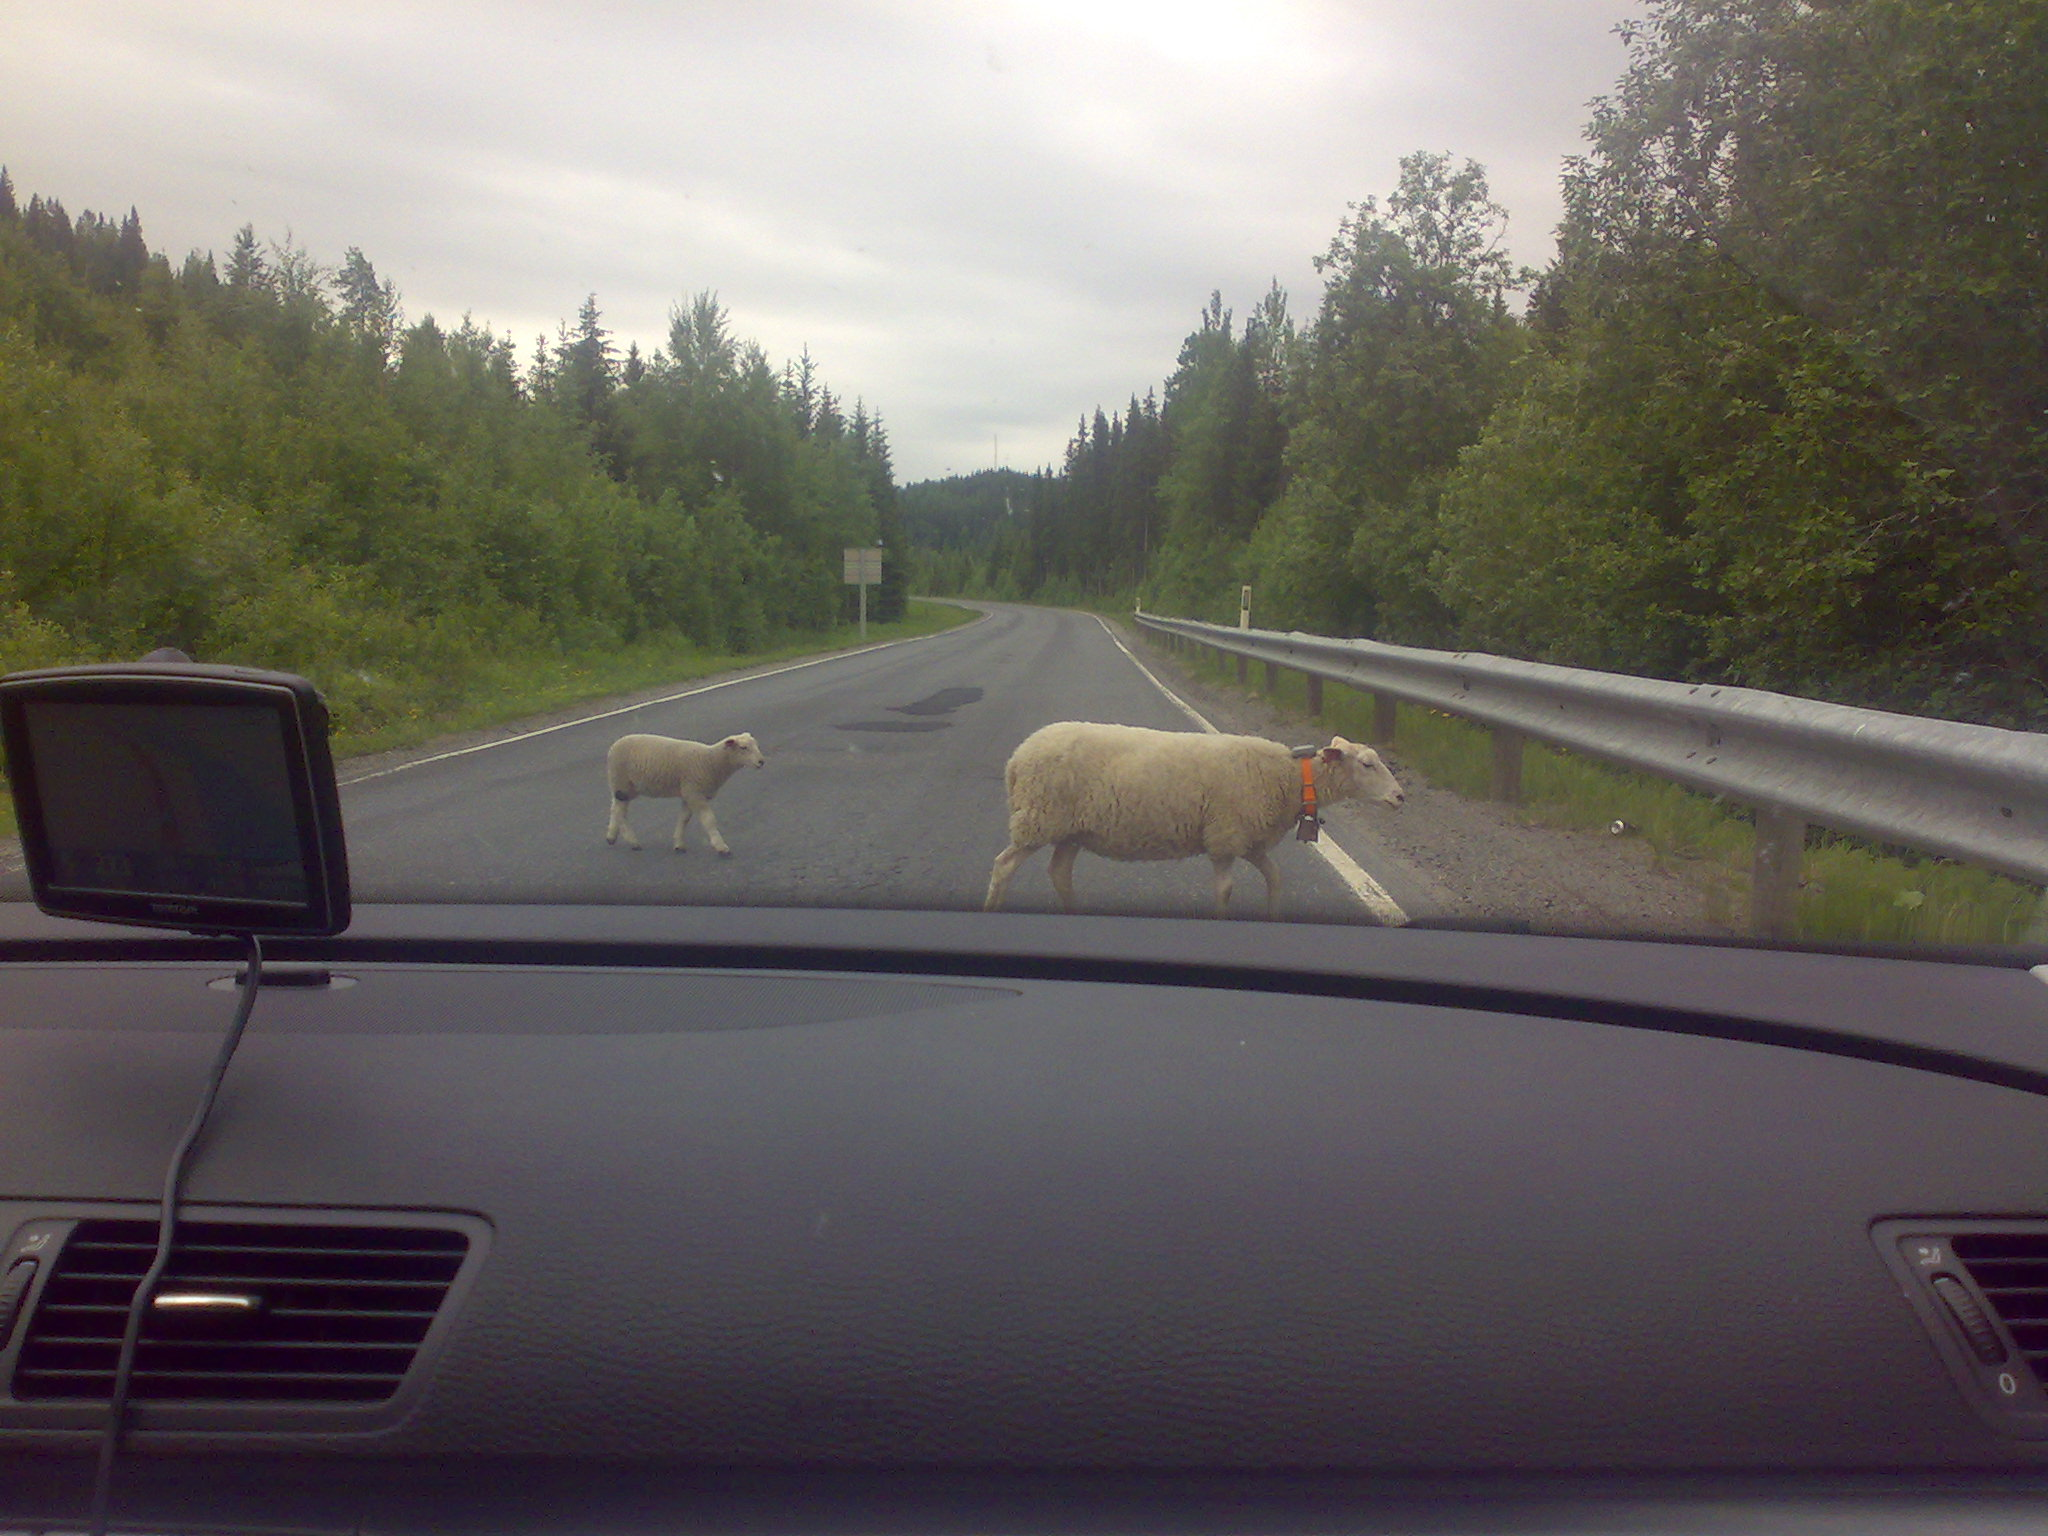 Two sheep crossing the road